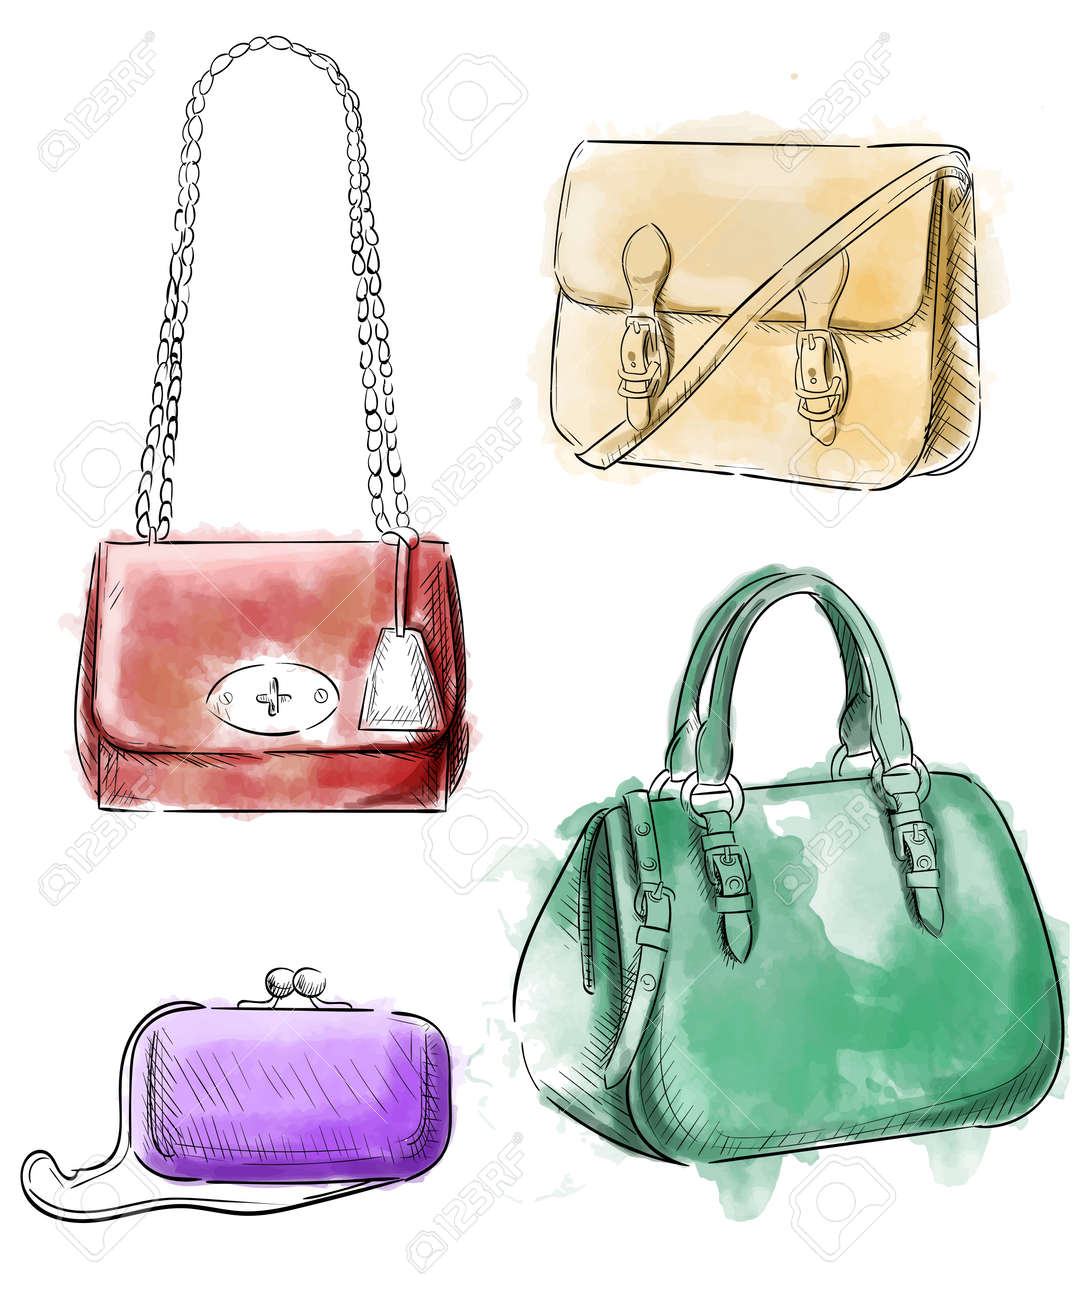 b9b61e999558 Sketches of bags. Vector fashion illustration. Women s Bags Hand Drawn  Purses set of women s